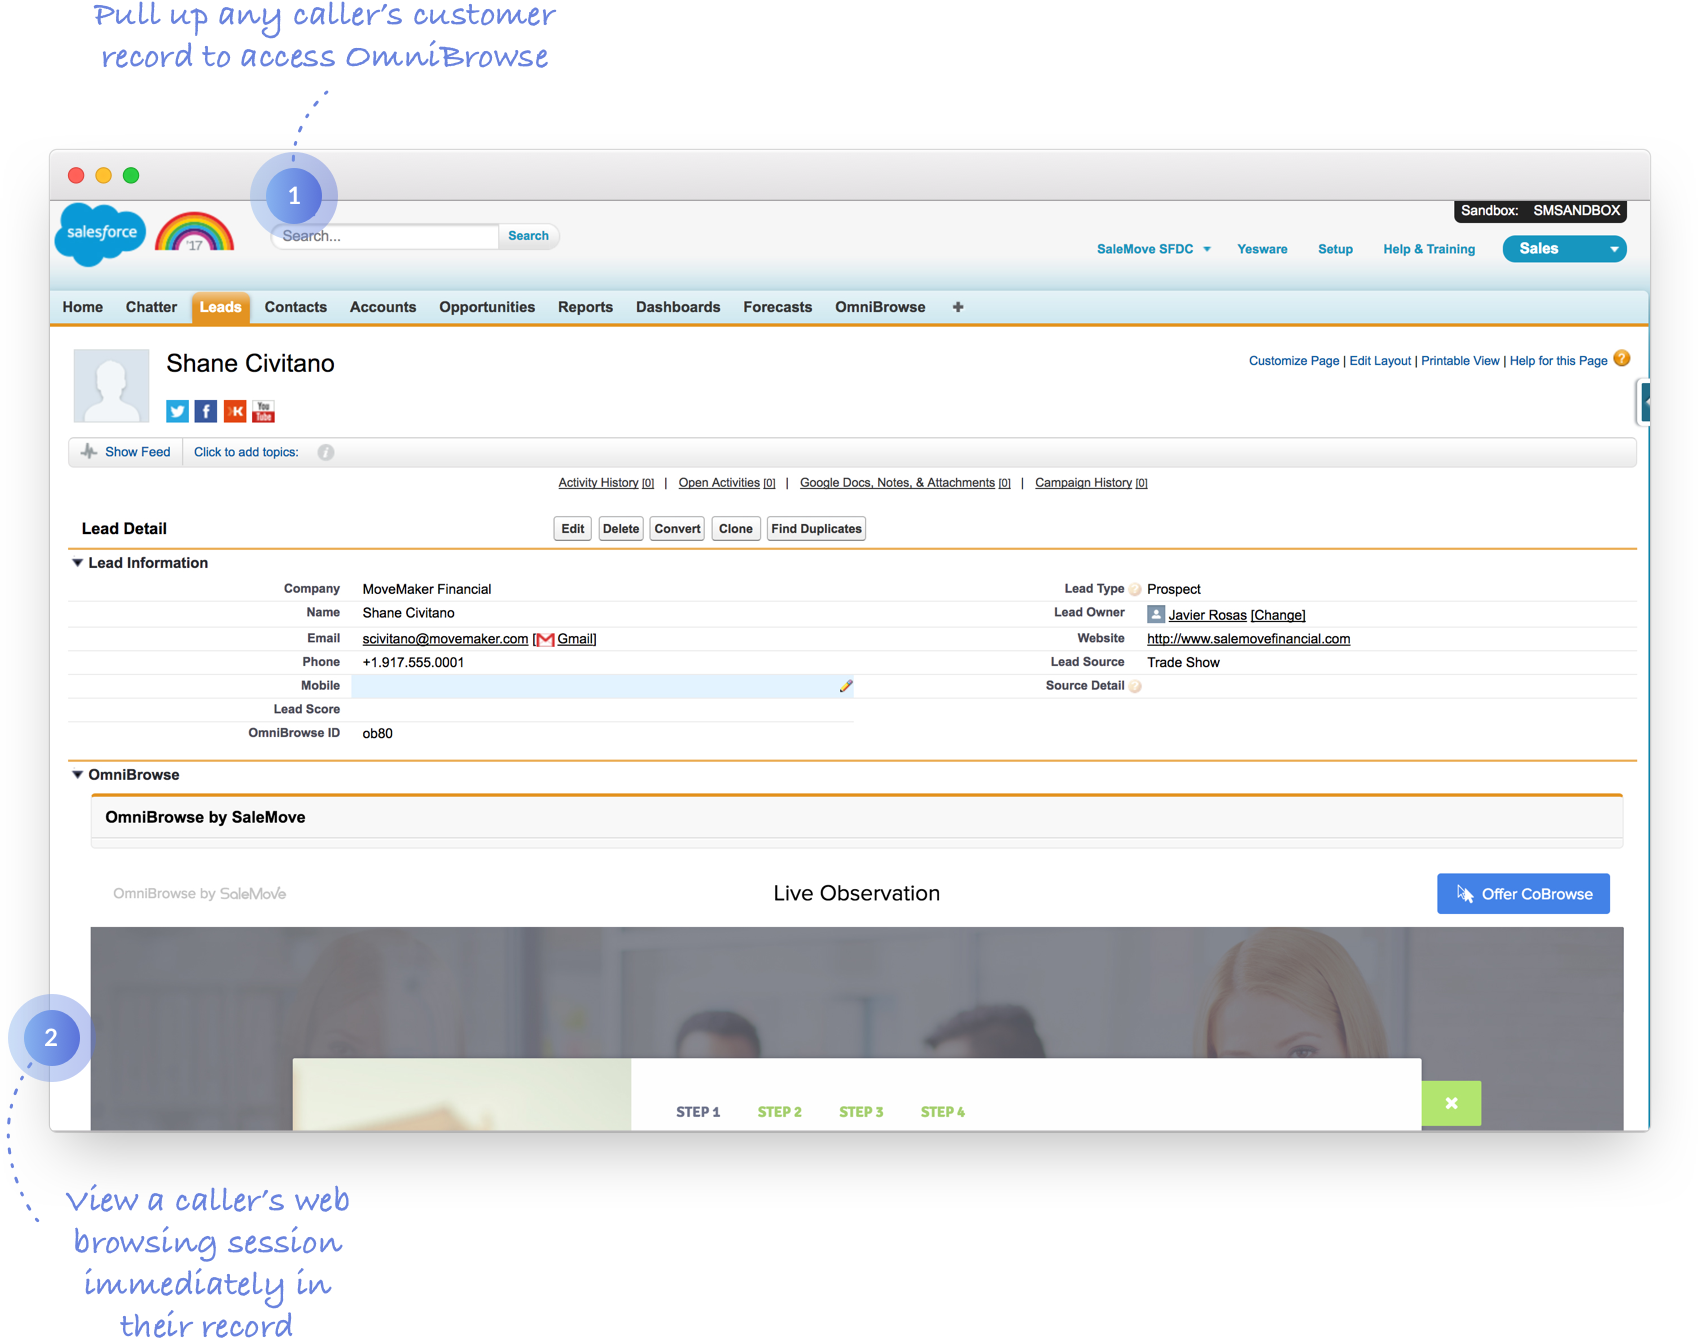 OmniBrowse integrates with Salesforce